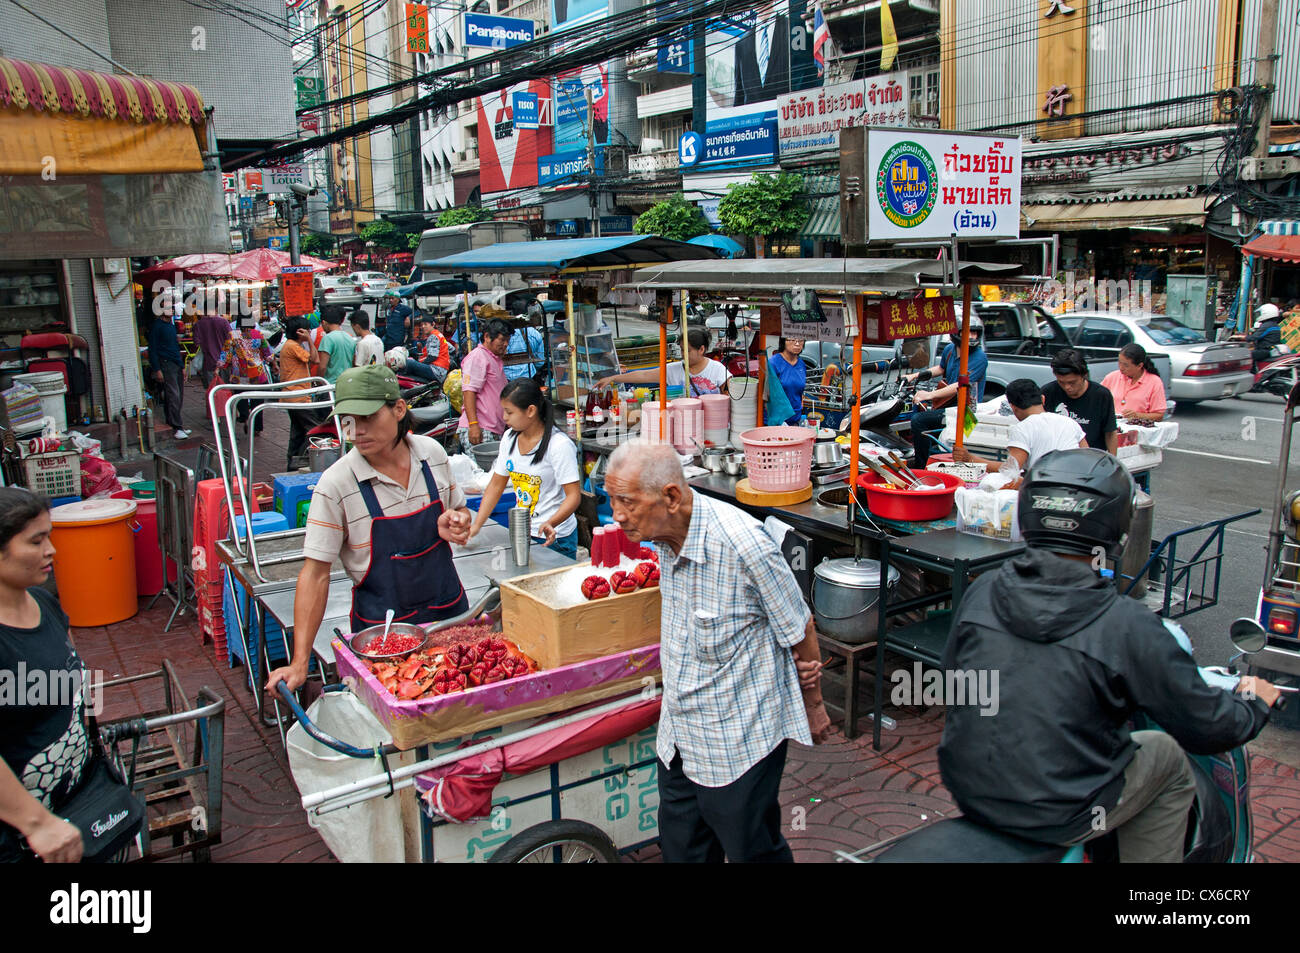 chinatown street market bangkok thailand thai food stock photo 50543583 alamy. Black Bedroom Furniture Sets. Home Design Ideas